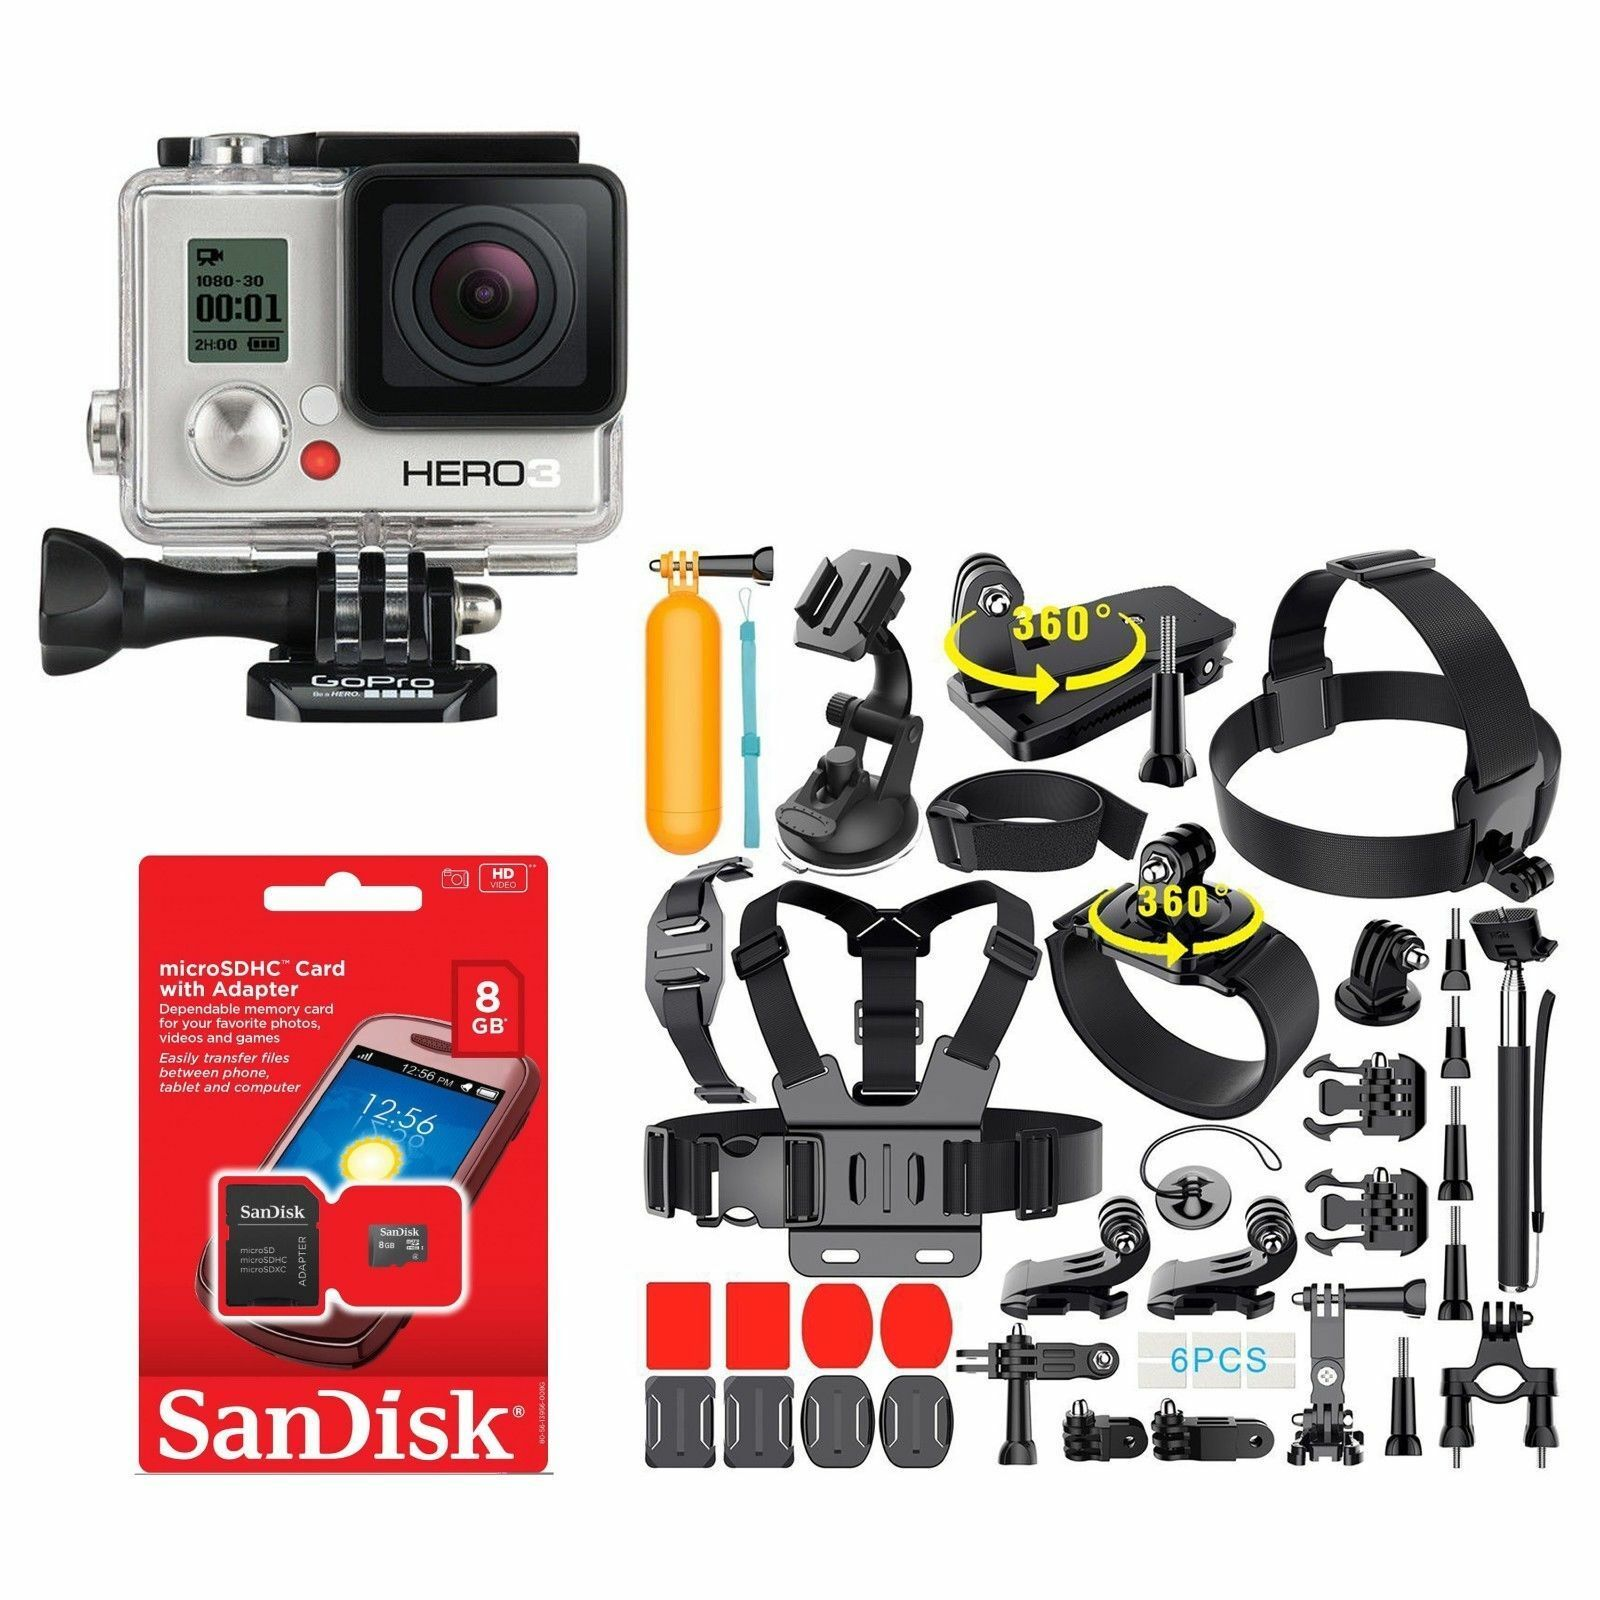 GoPro HERO3 WHITE Edition Action Camera CHDHE-301 With lots of 35+ Accessories! Featured